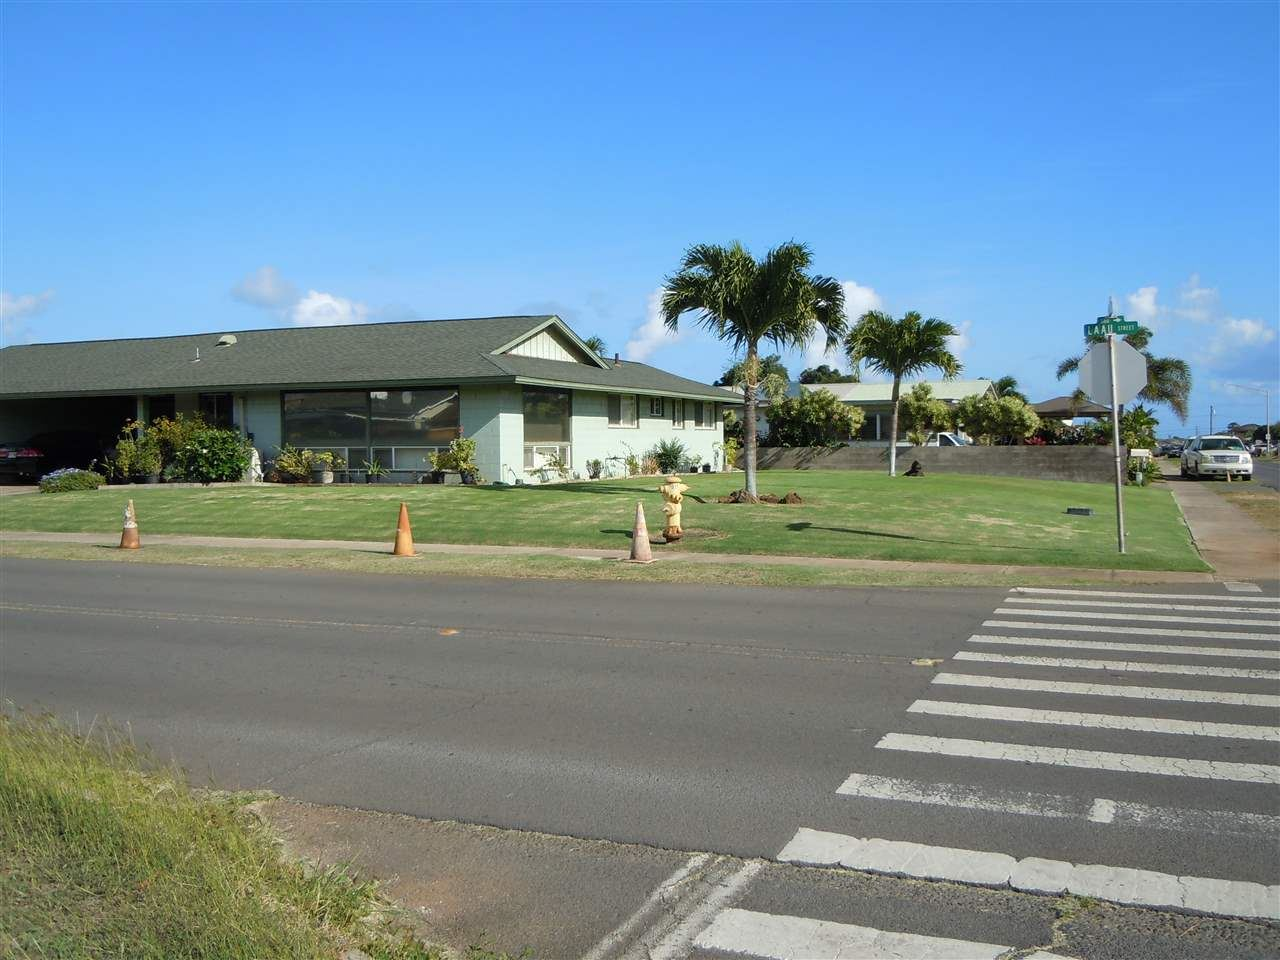 Photo of 533 Laau St, Kahului, HI 96732 (MLS # 389640)